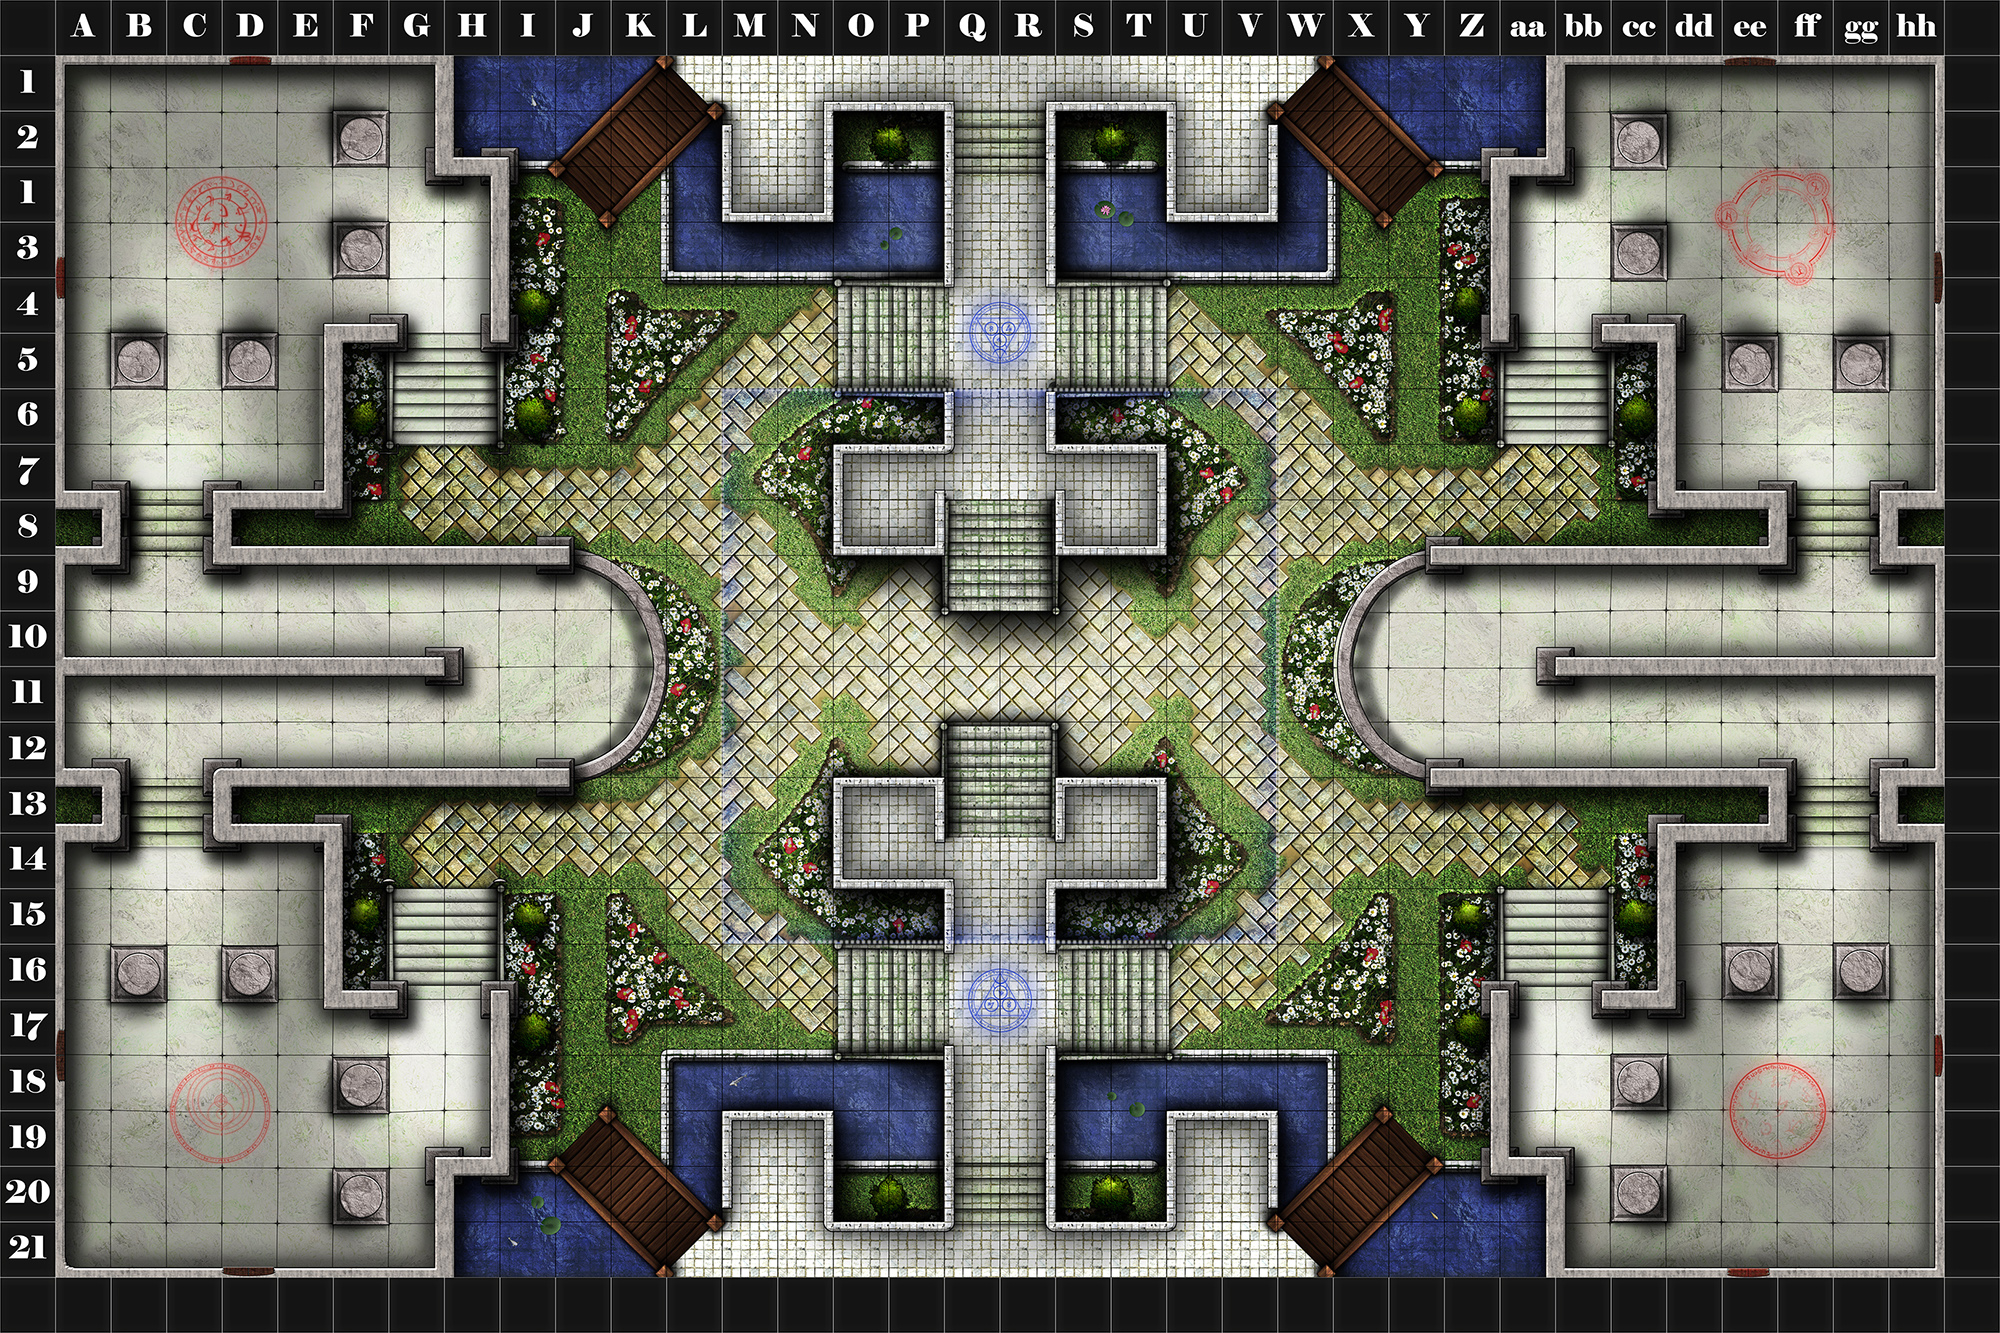 This is a D20 PvP battle map designed for four teams, comissioned by the folks at Conflict Books RPG (http://conflictbooks.com/). It is titled Ancient's Atrium, and the full version is 300DPI, posters sized. This low-res version is displayed with the permission of Conflict books solely for my portfolio use.